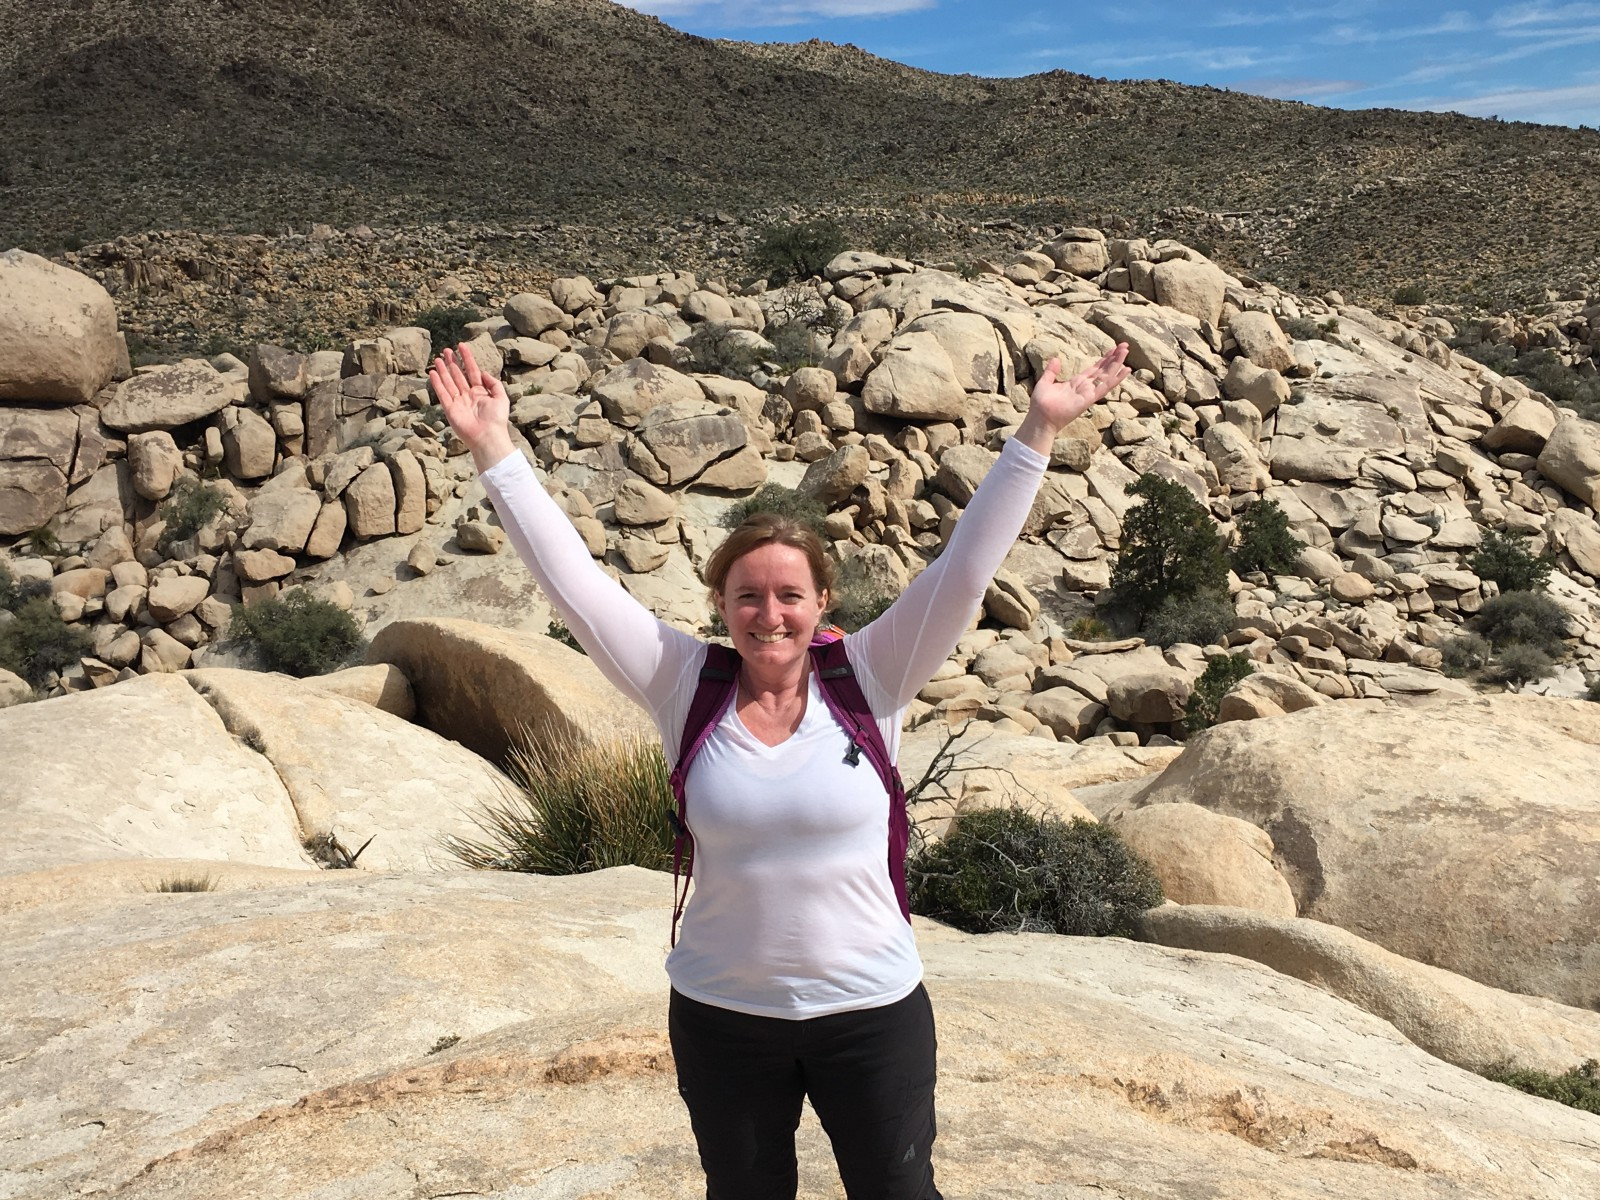 Facing my fear of heights to scramble up a 450 feet high rock pile in Joshua Tree leaves me feeling grateful for the whole world.